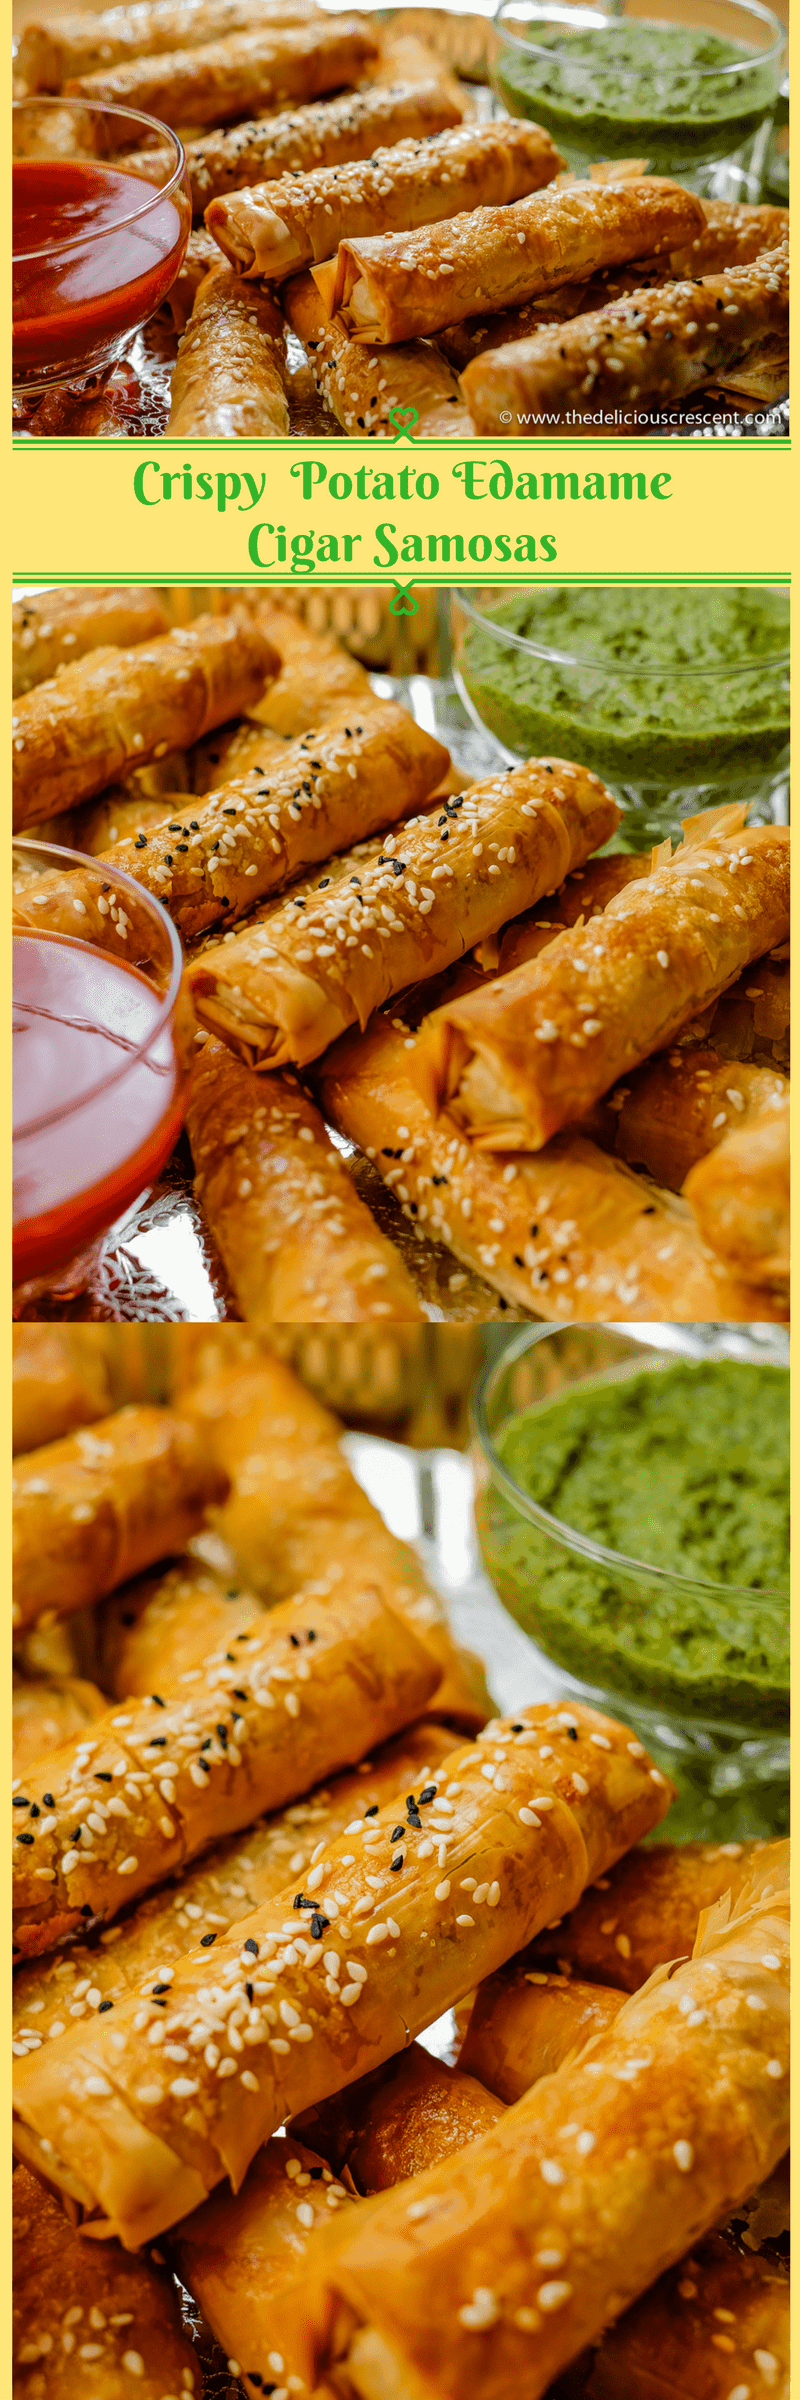 Crispy Potato Edamame Cigar Samosas - an easier and lighter baked version of a hugely popular Indian snack, loaded in flavor and boosted in nutrients. These samosas freeze very well too.